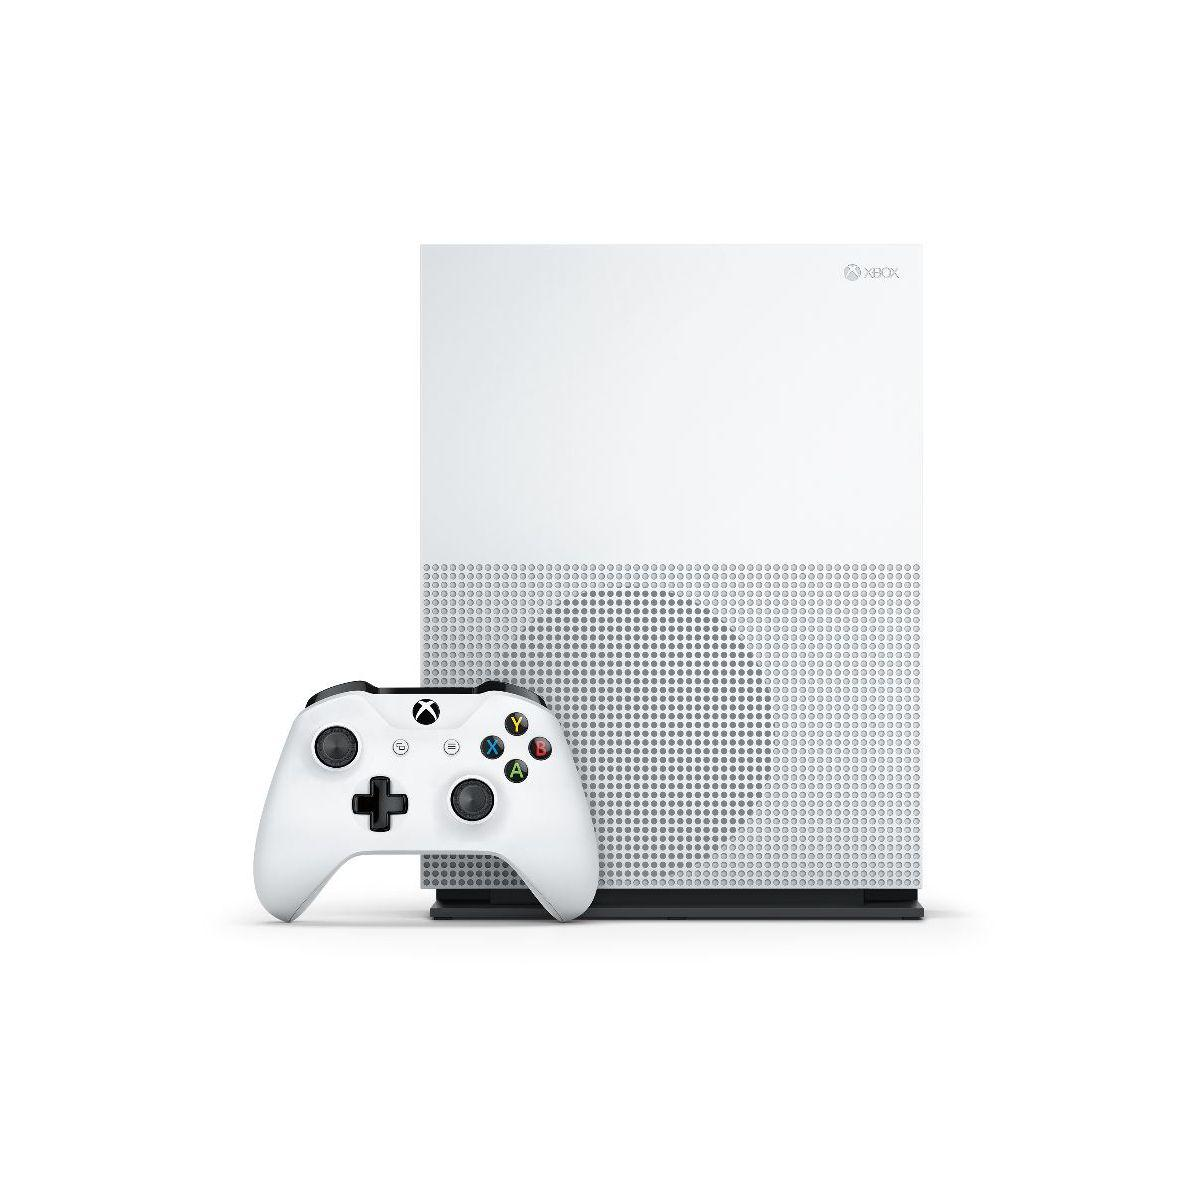 Console Microsoft Xbox One S 500 GB + Controller - Wit